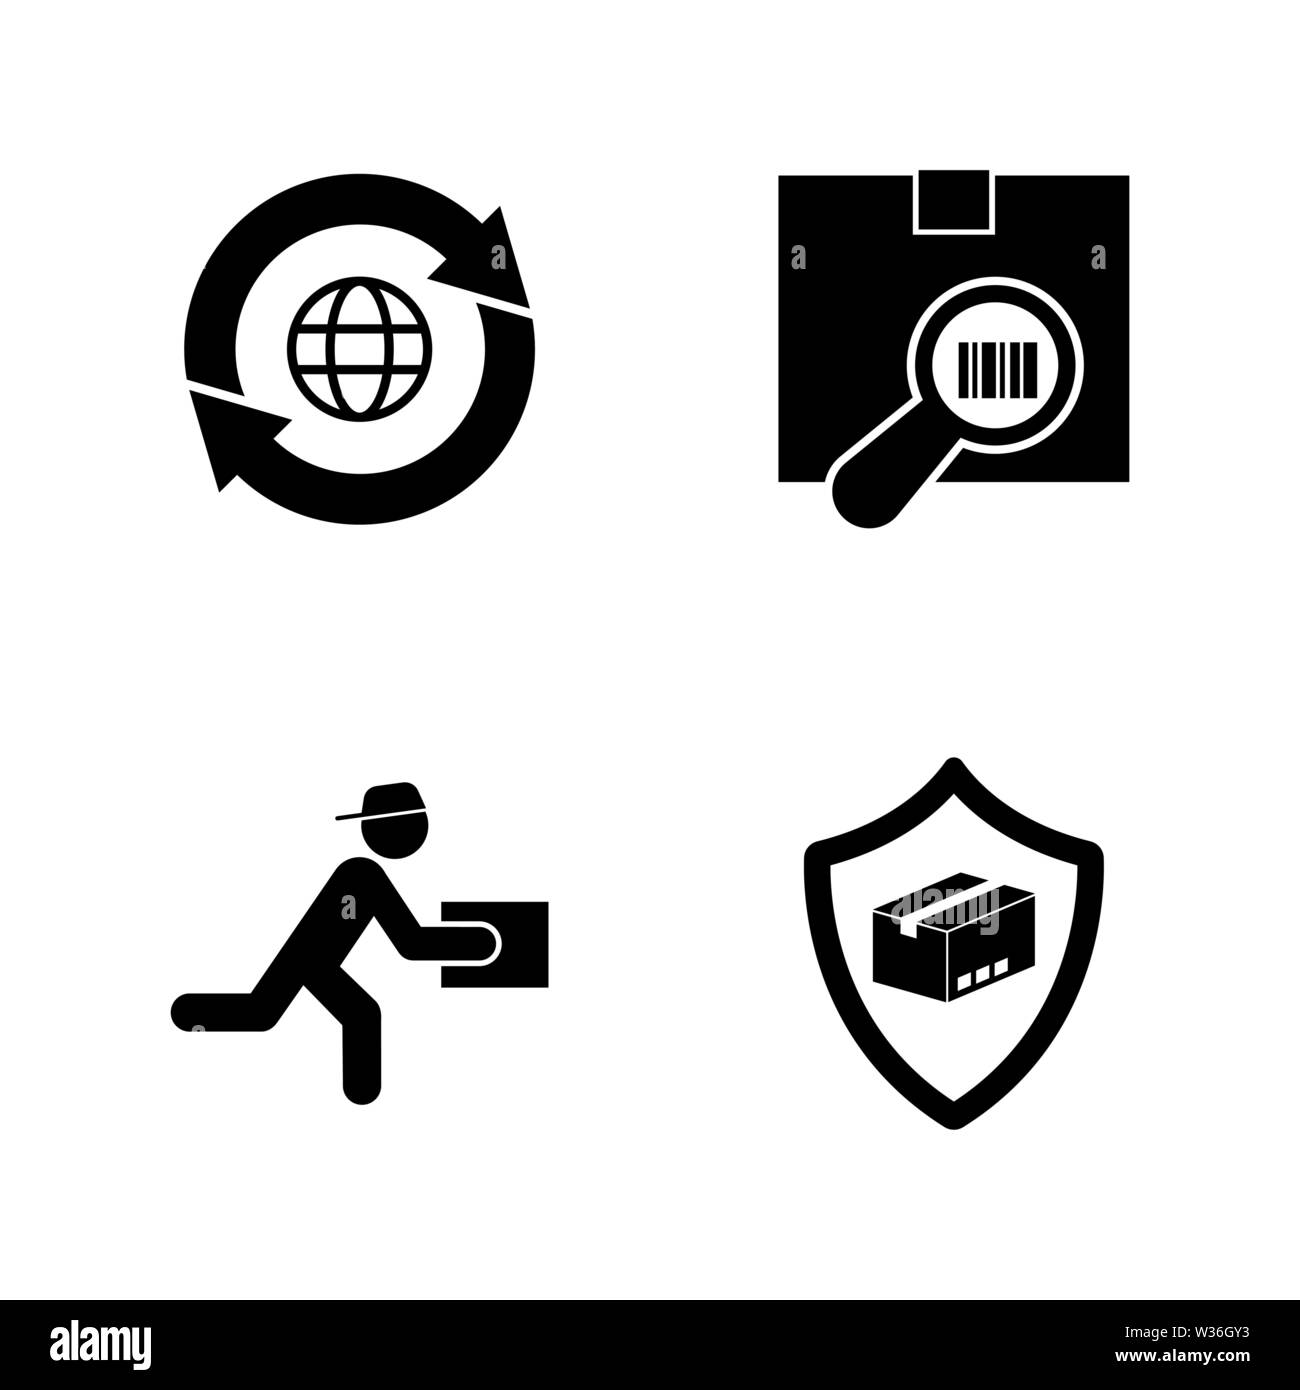 Logistic Shipping, Delivery. Simple Related Vector Icons Set for Video, Mobile Apps, Web Sites, Print Projects and Your Design. Logistic Delivery icon - Stock Image